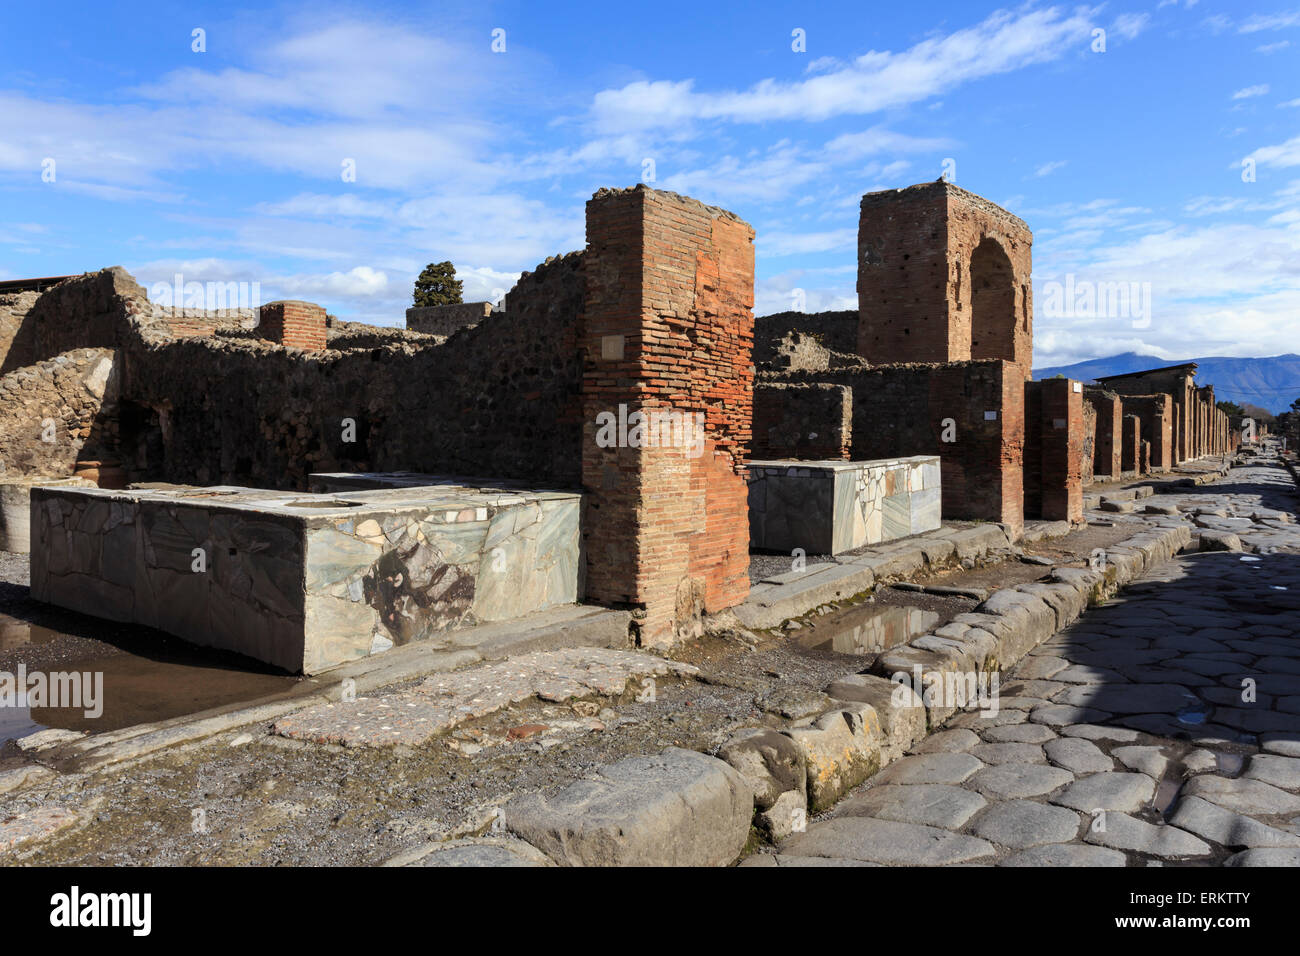 Cobbled street with thermopolium counters and arch, Roman ruins of Pompeii, UNESCO World Heritage Site, Campania, - Stock Image